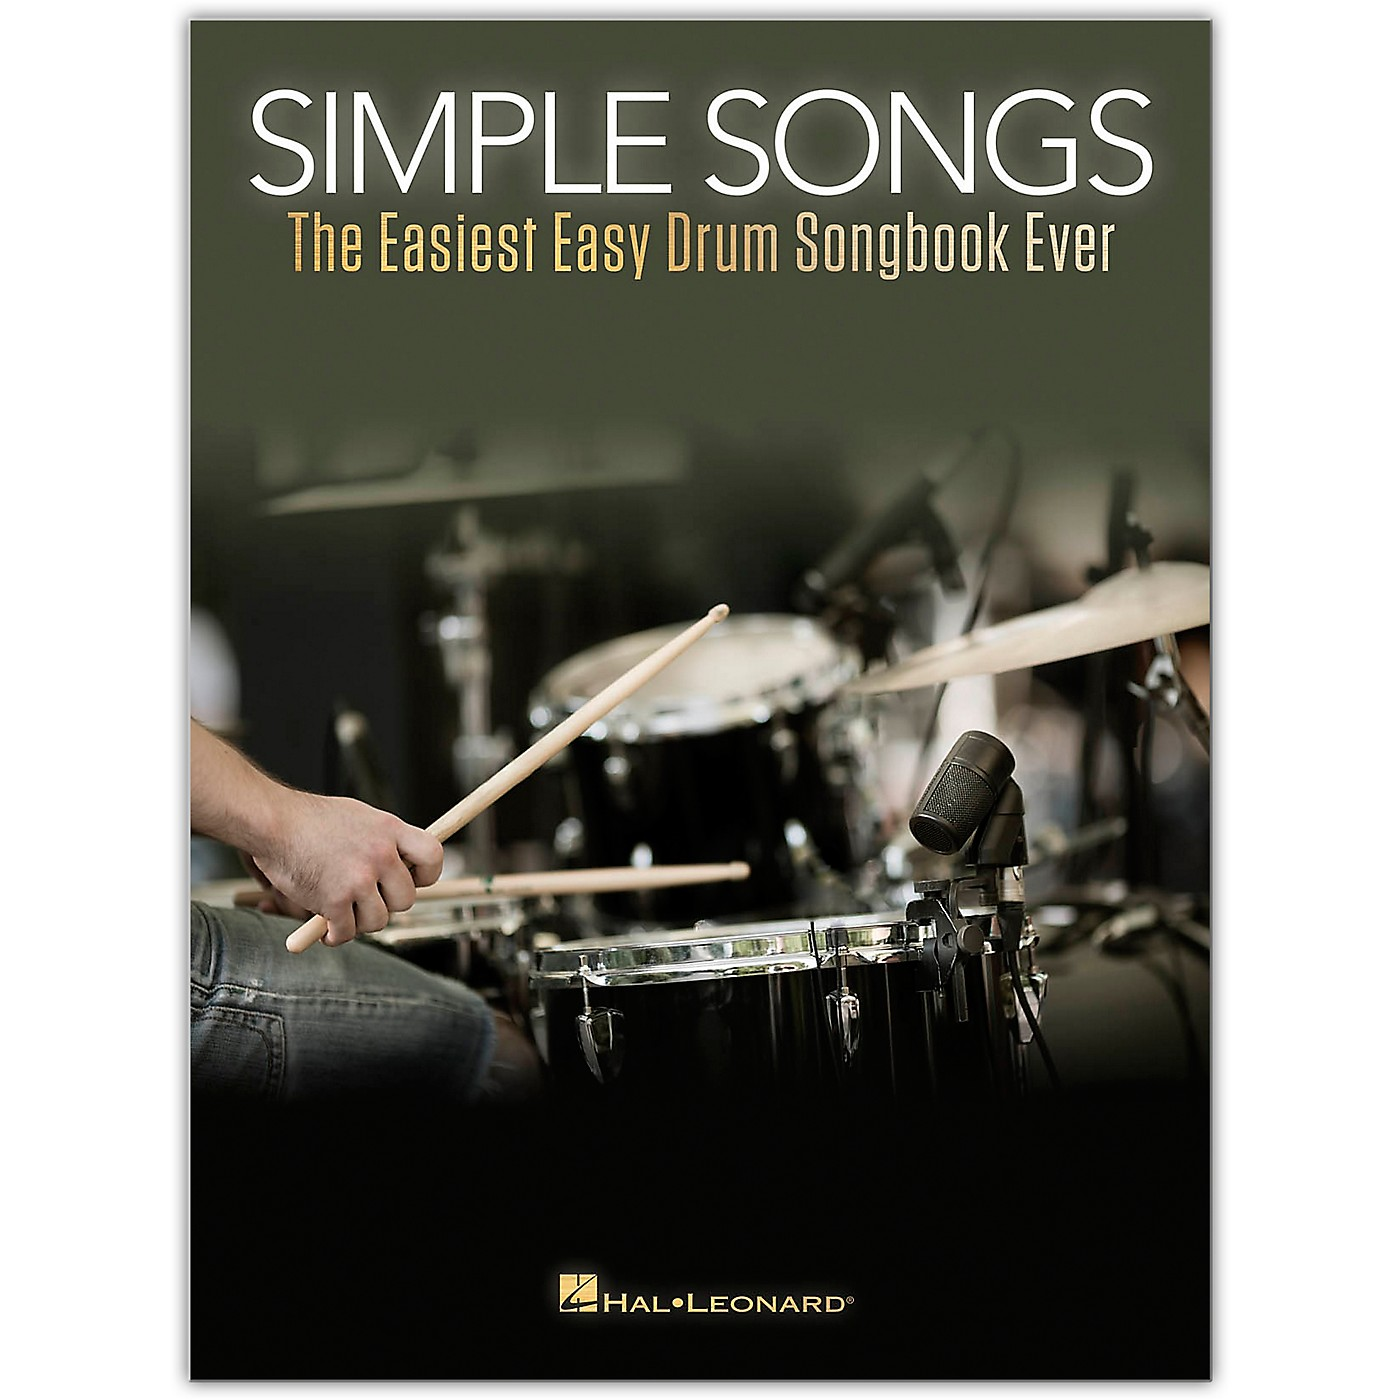 Hal Leonard Simple Songs - The Easiest Easy Drum Songbook Ever thumbnail